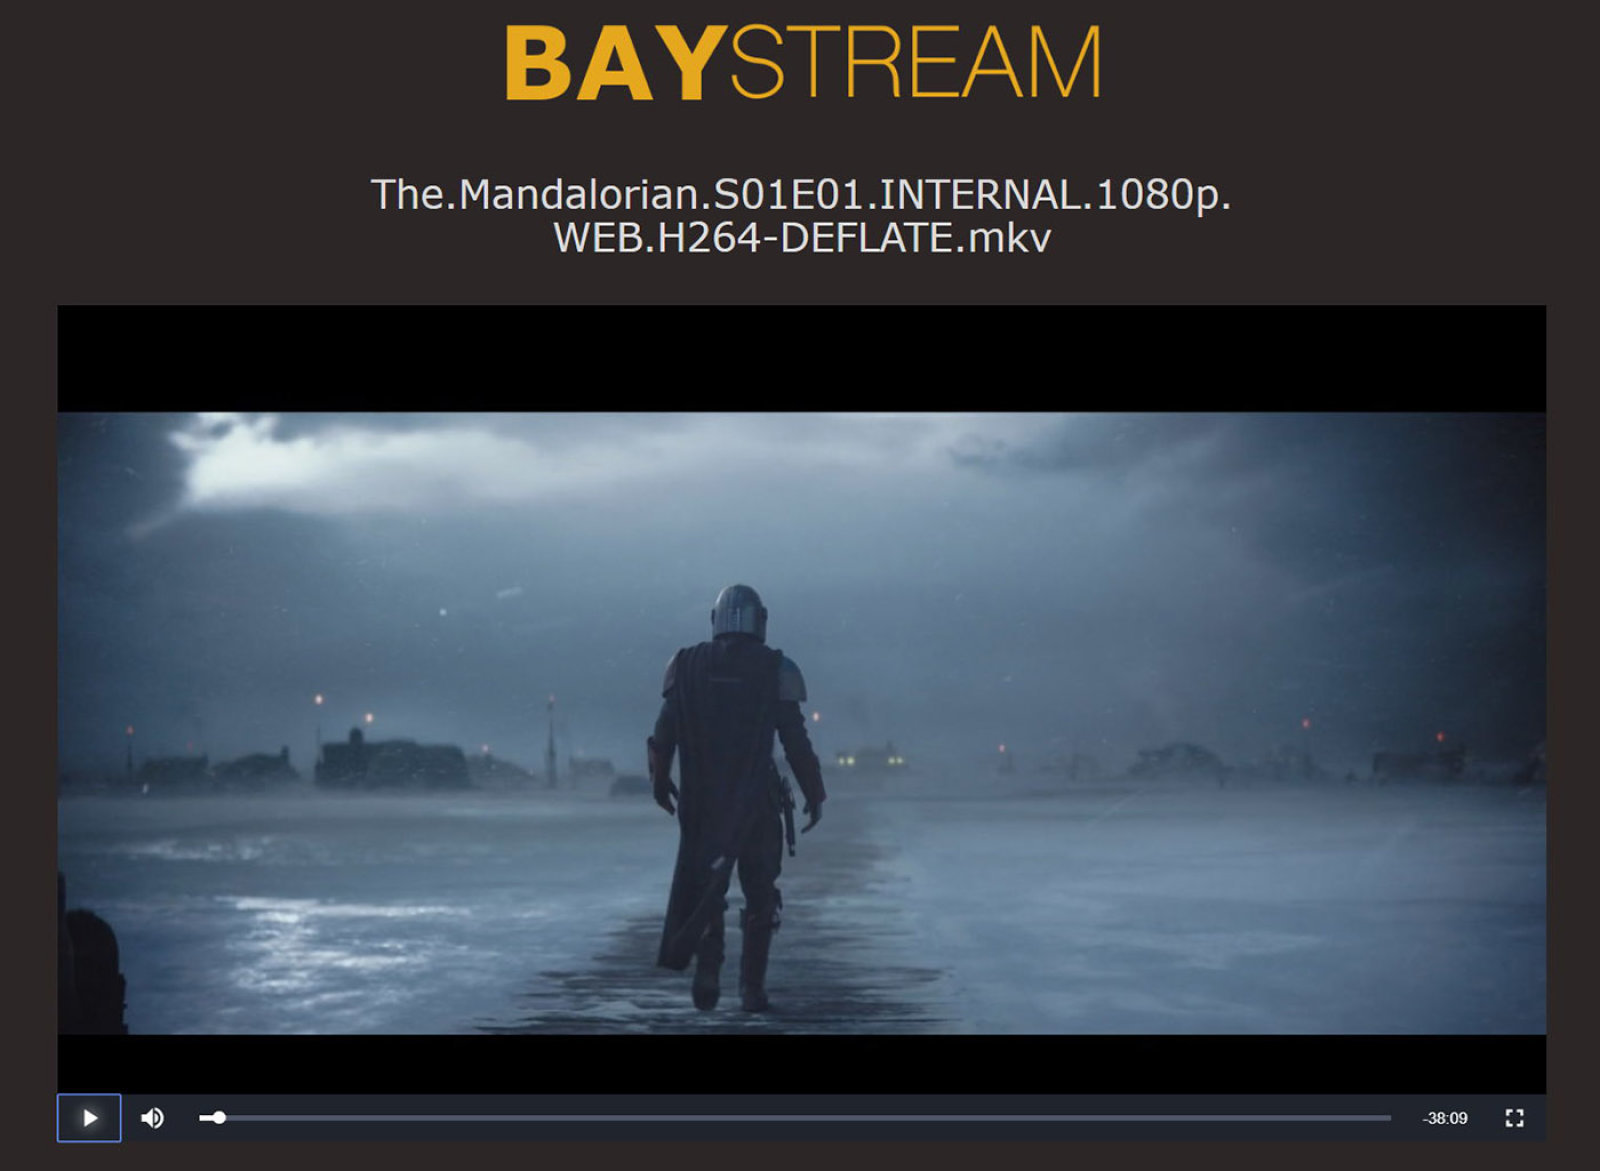 The Pirate Bay testa serviço de streaming – Mundo Smart - mundosmart